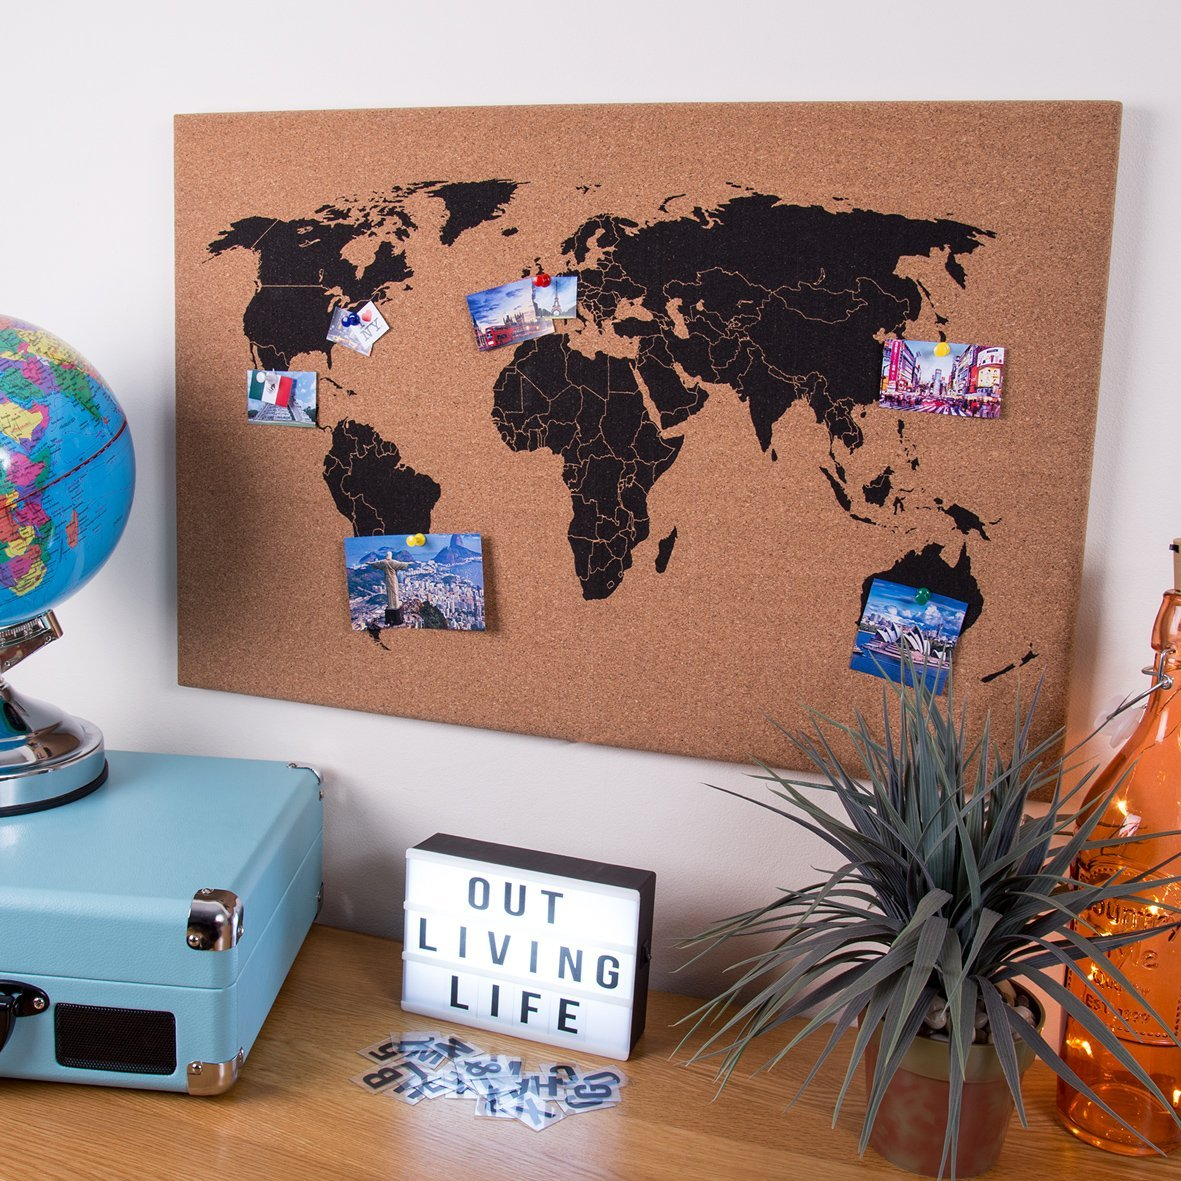 Corkboard world map wall atlas cork memo board including 6 pins corkboard world map wall atlas cork memo board including 6 pins home60 x 40cm gumiabroncs Image collections